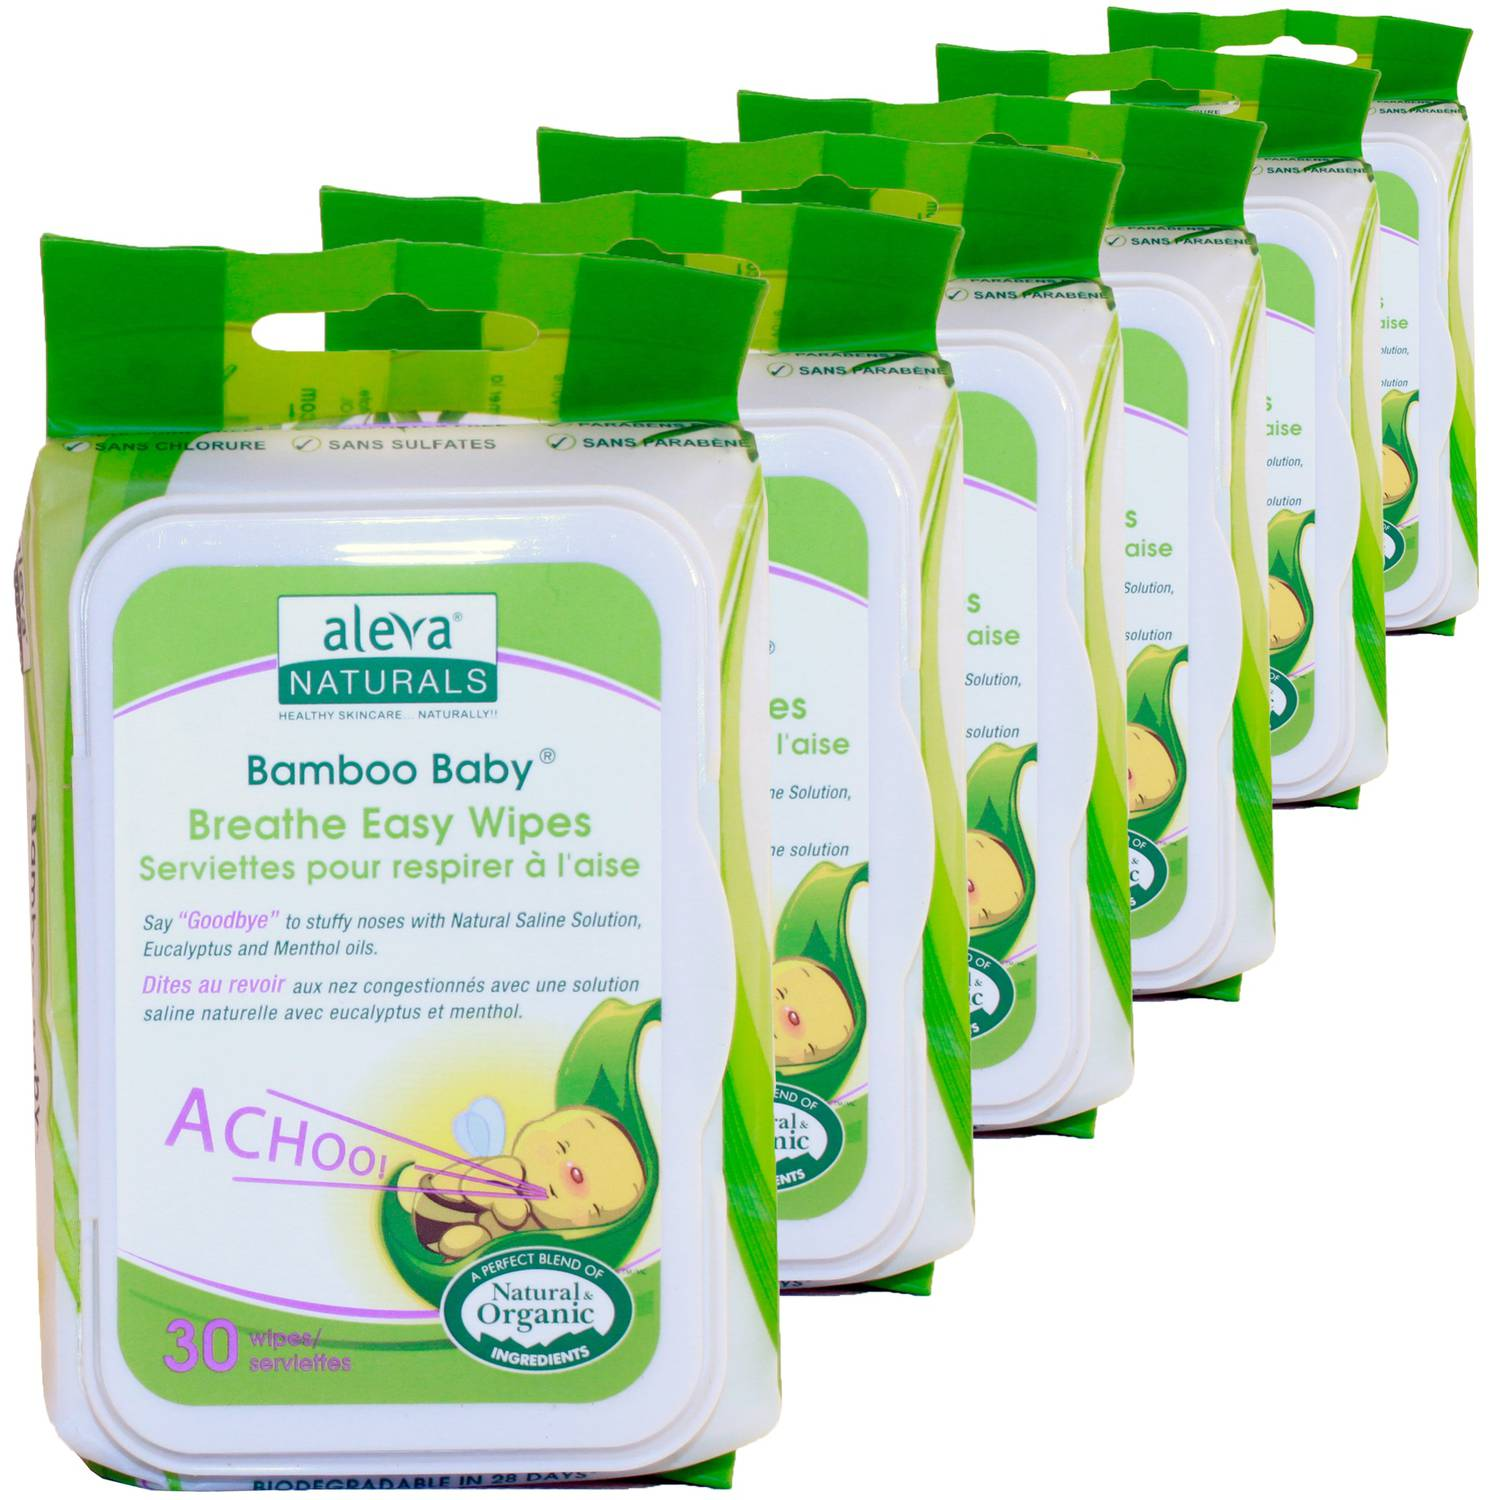 Aleva Naturals Bamboo Baby Nose n��� Blow Wipes, 30 sheets, 6 count